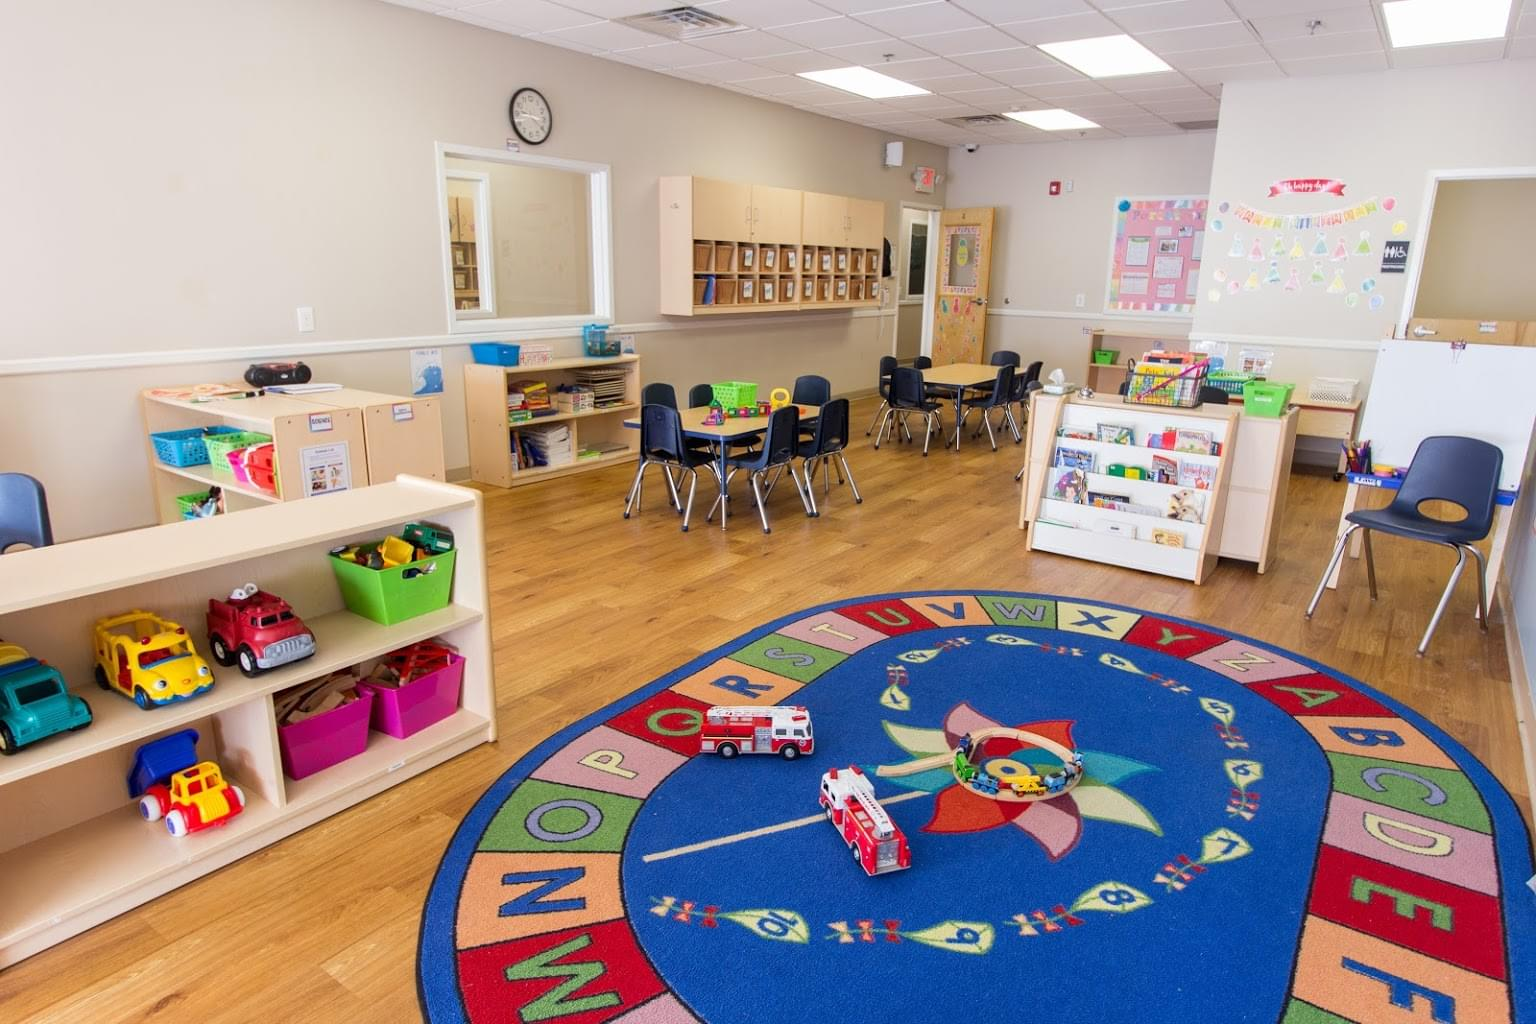 Lightbridge Academy pre-school and daycare in Manalapan, NJ